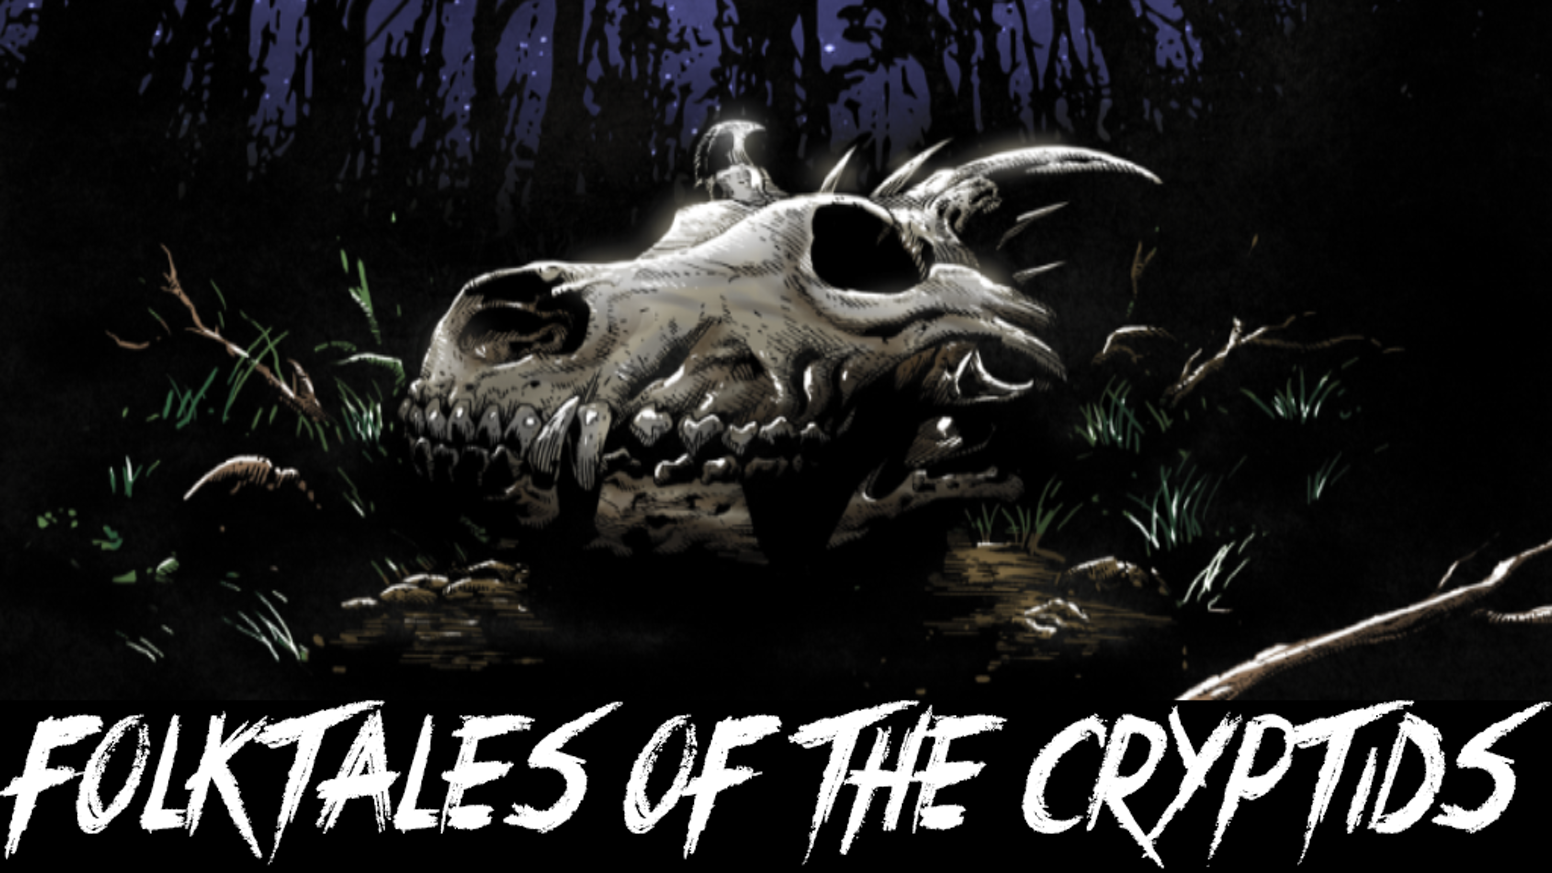 A collection of four Horror tales each based on a mythical creature. Featuring The Mothman, The Chupacabra and more...